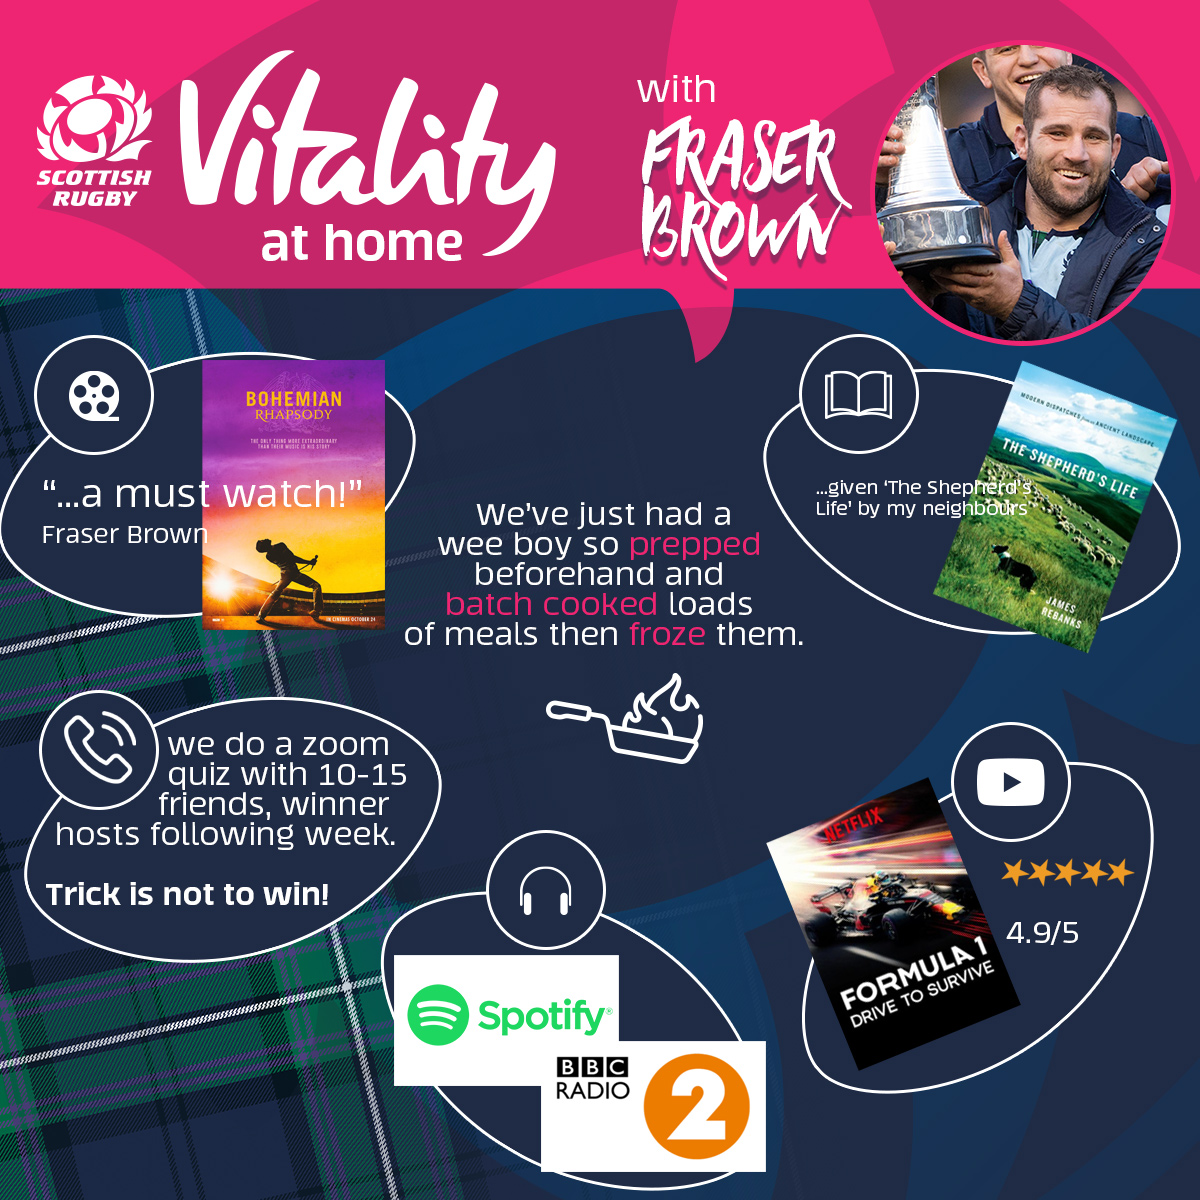 Fraser Brown shares his at home recommendations 🏡 See how Fraser is keeping entertained and connected during this time. For more tips on exercise, nutrition and how to stay positive from a range of sports stars visit @Vitality_UK. . #AsOneAtHome